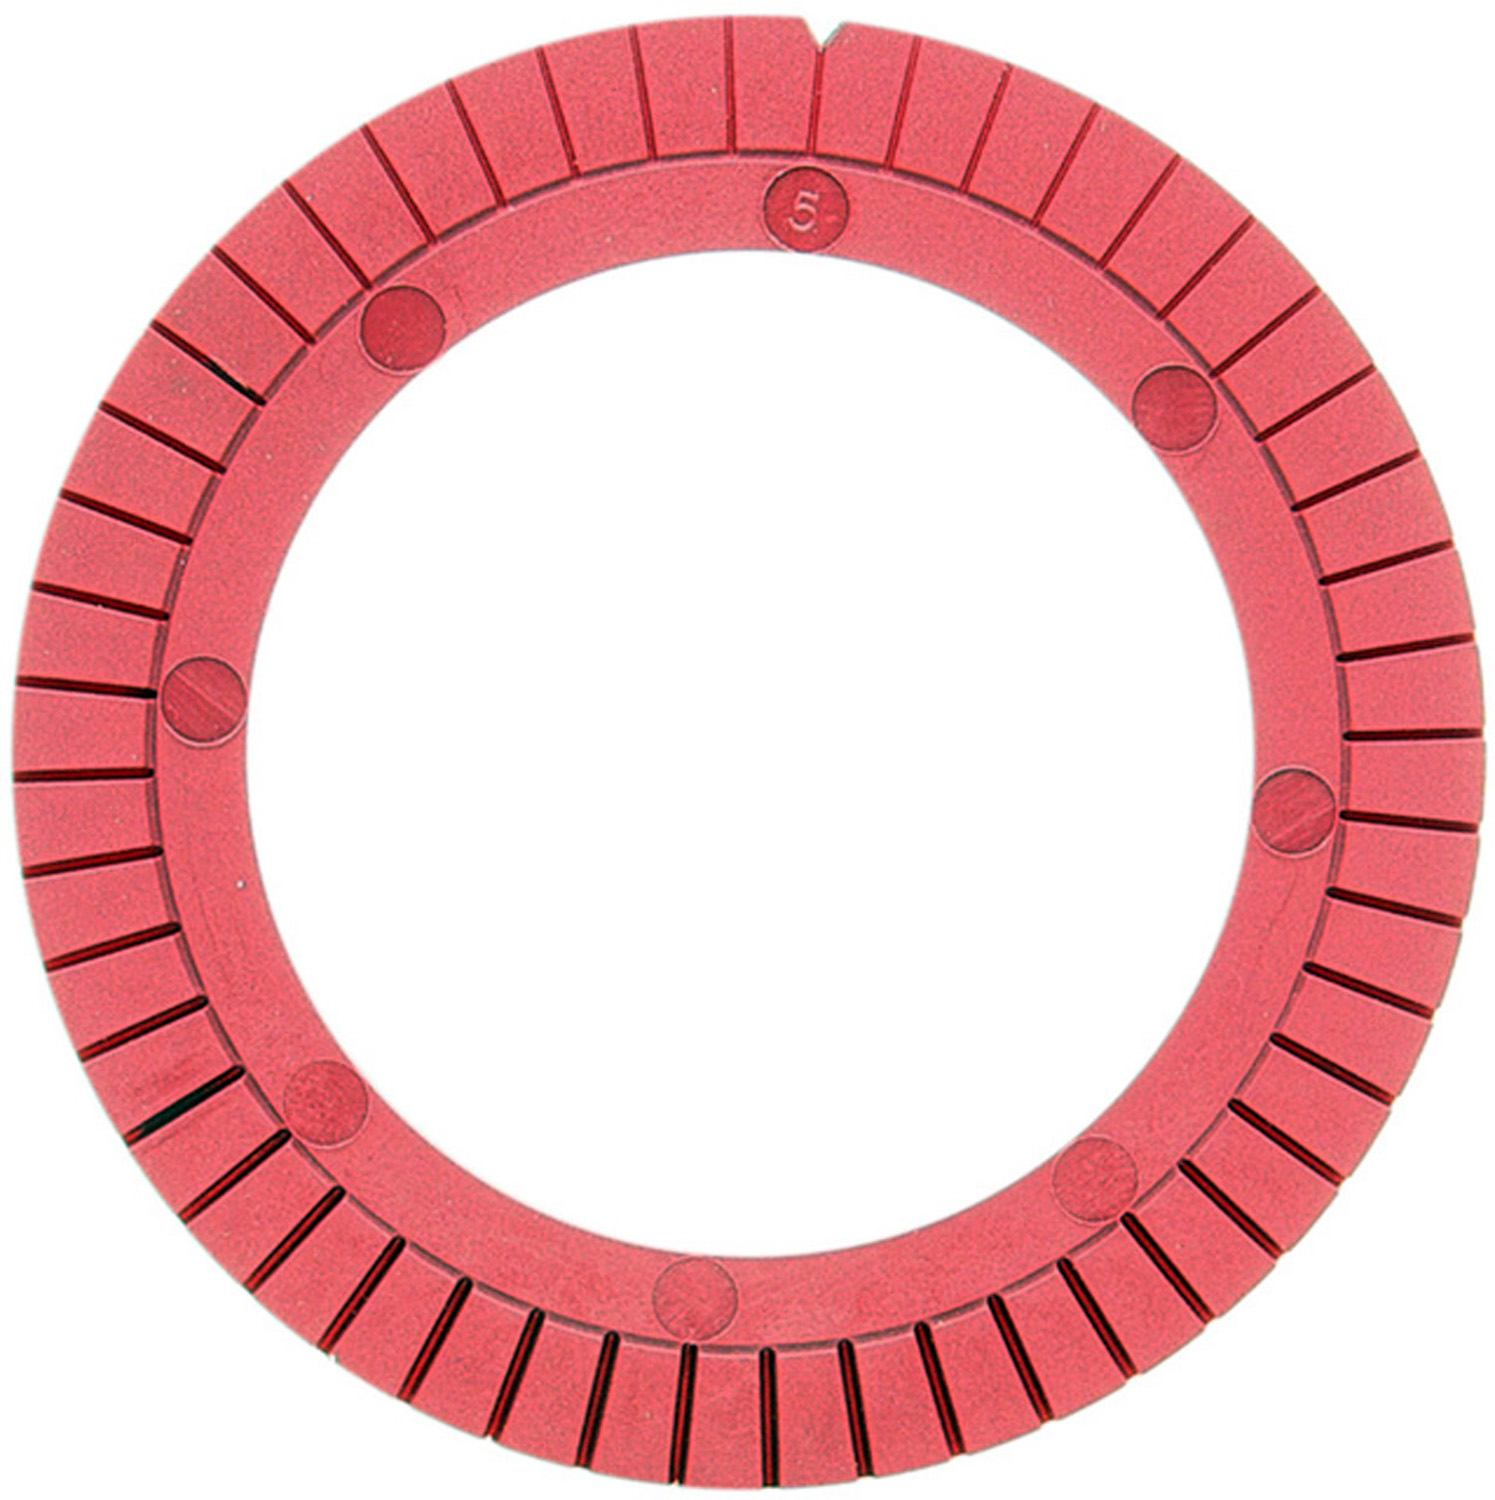 ACDELCO GOLD/PROFESSIONAL - Alignment Shim (Rear) - DCC 45K13132